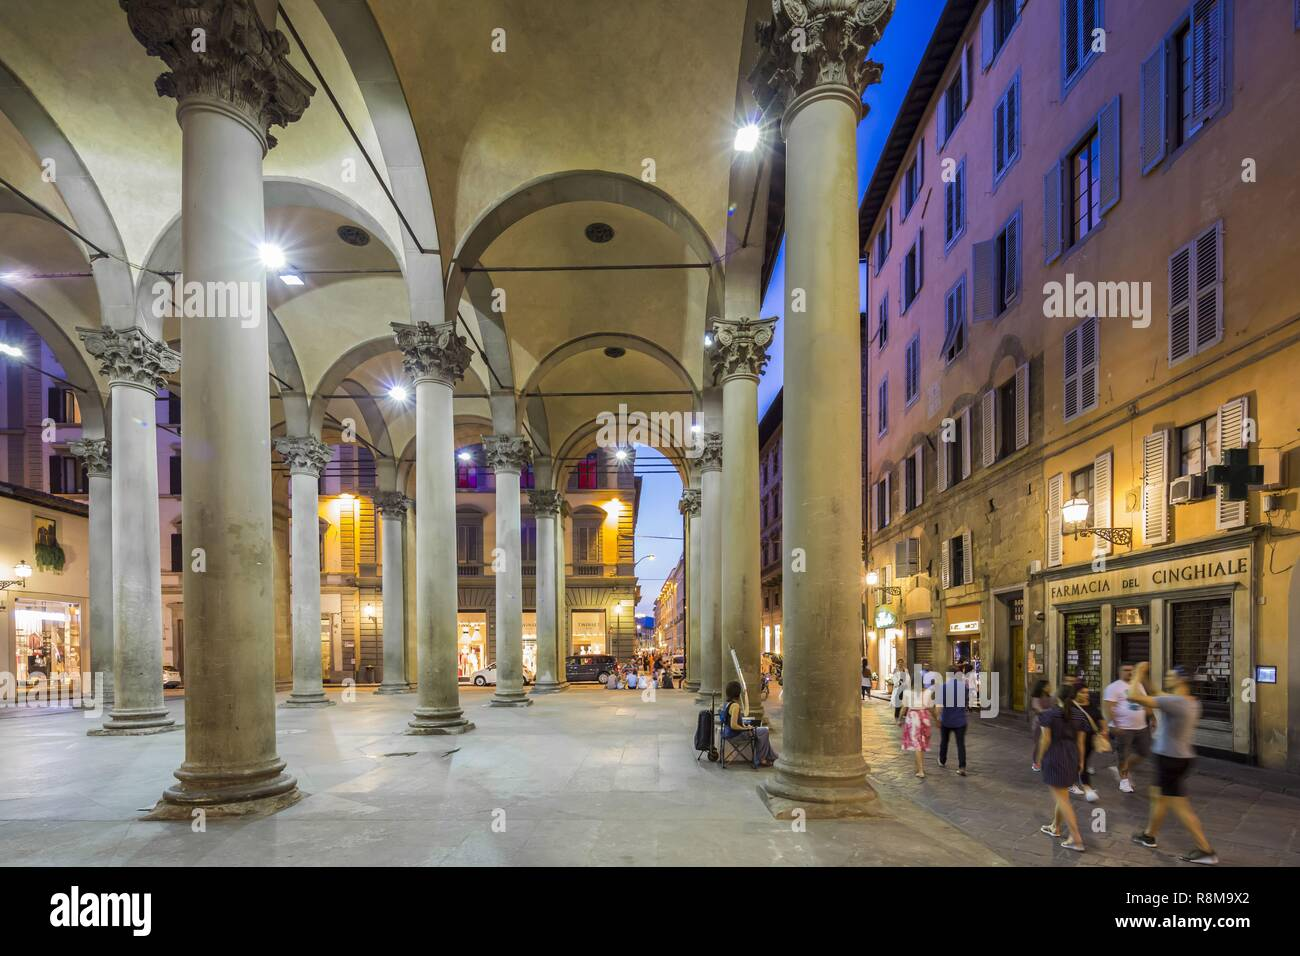 Italy, Tuscany, Florence, historic center listed as World Heritage by UNESCO, place Piazza del Mercato Nuovo - Stock Image